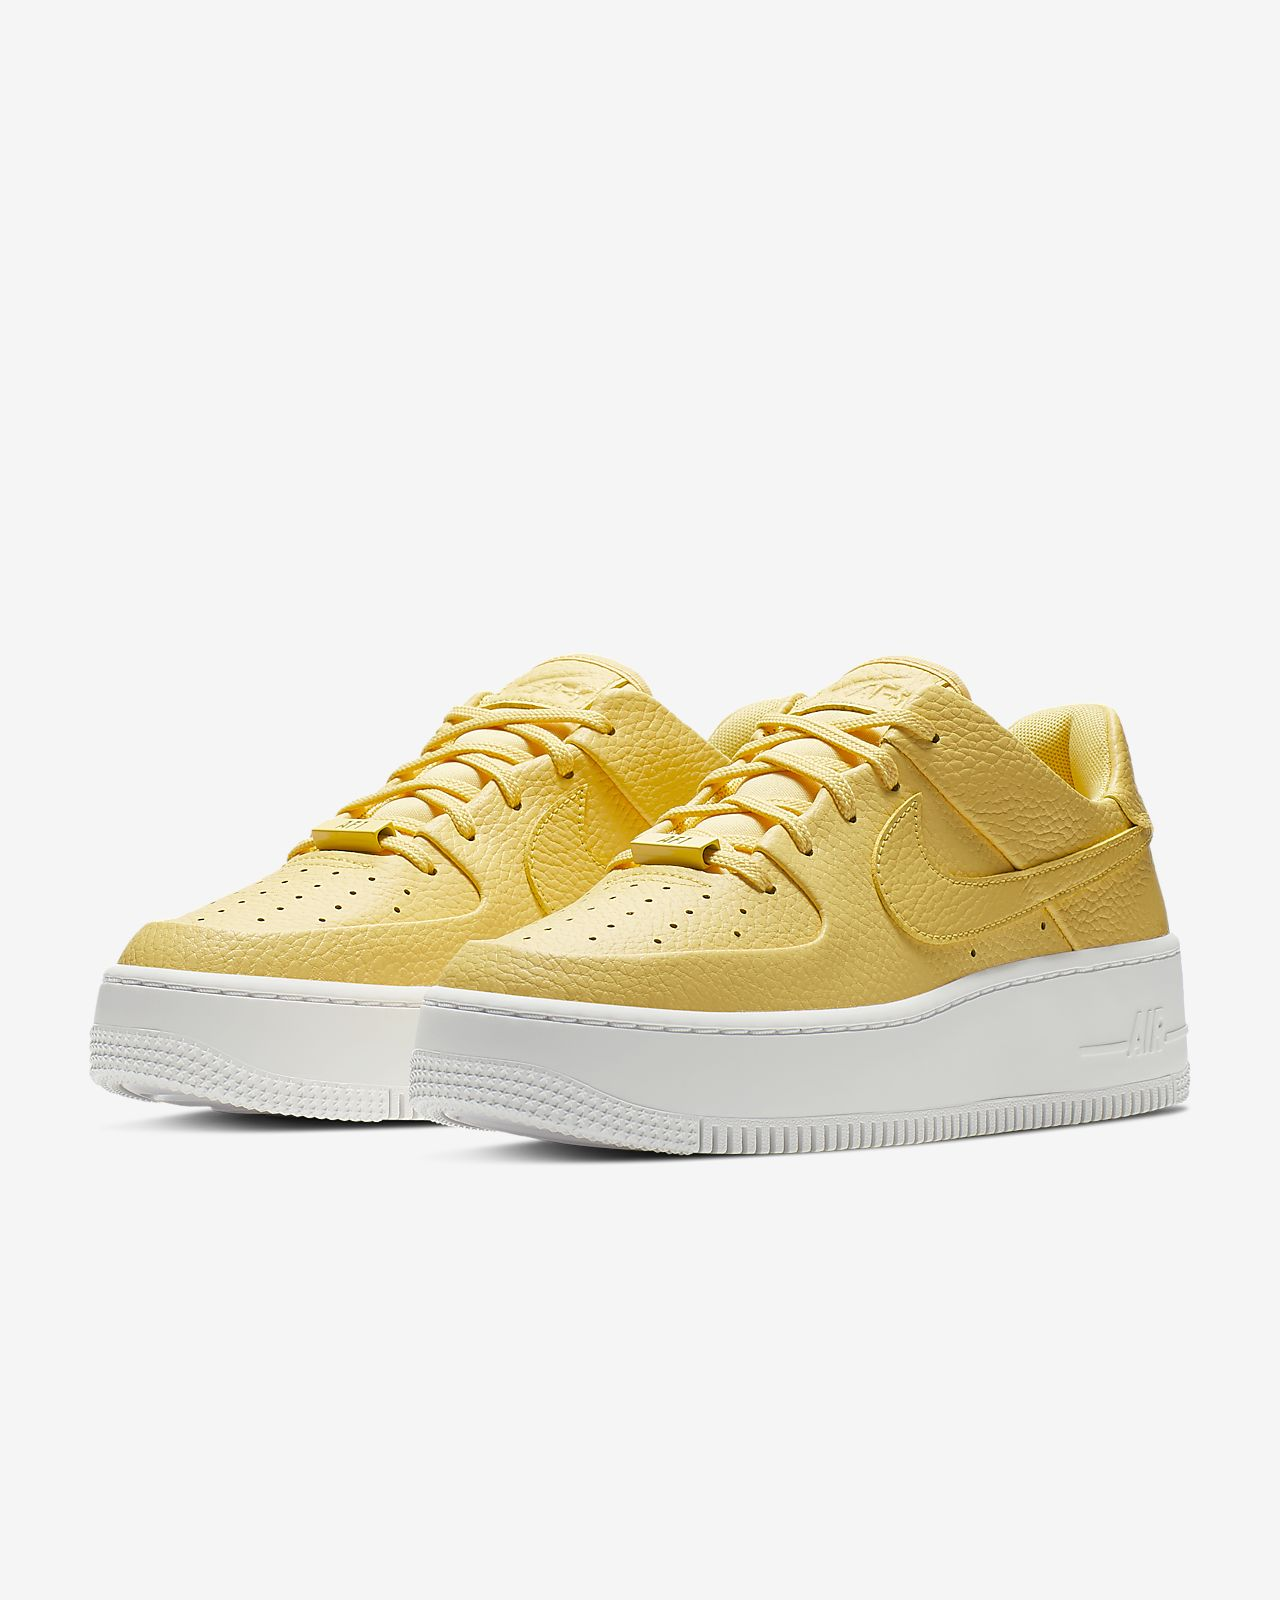 competitive price 3b5fb ee572 ... Nike Air Force 1 Sage Low Women s Shoe